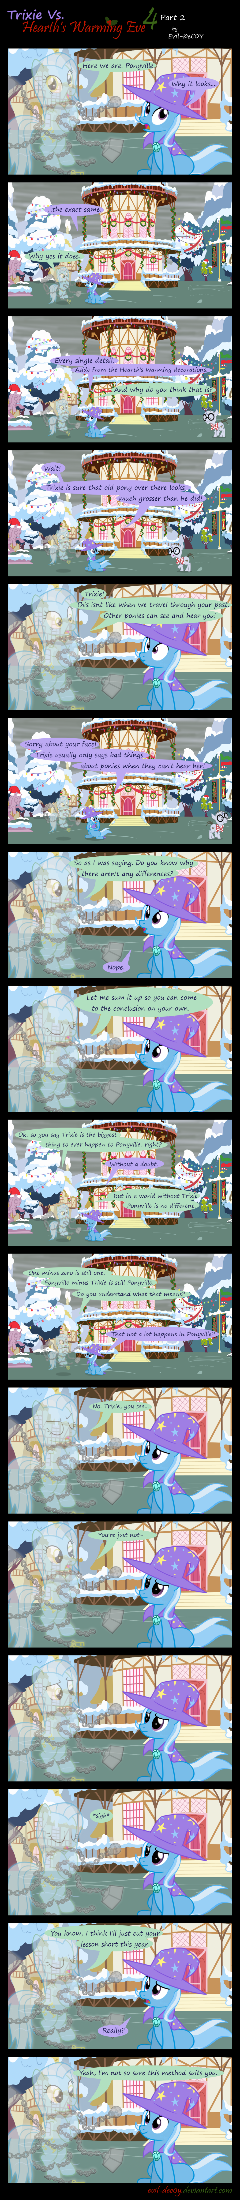 Trixie Vs. Hearth's Warming Eve 4 (part 2)